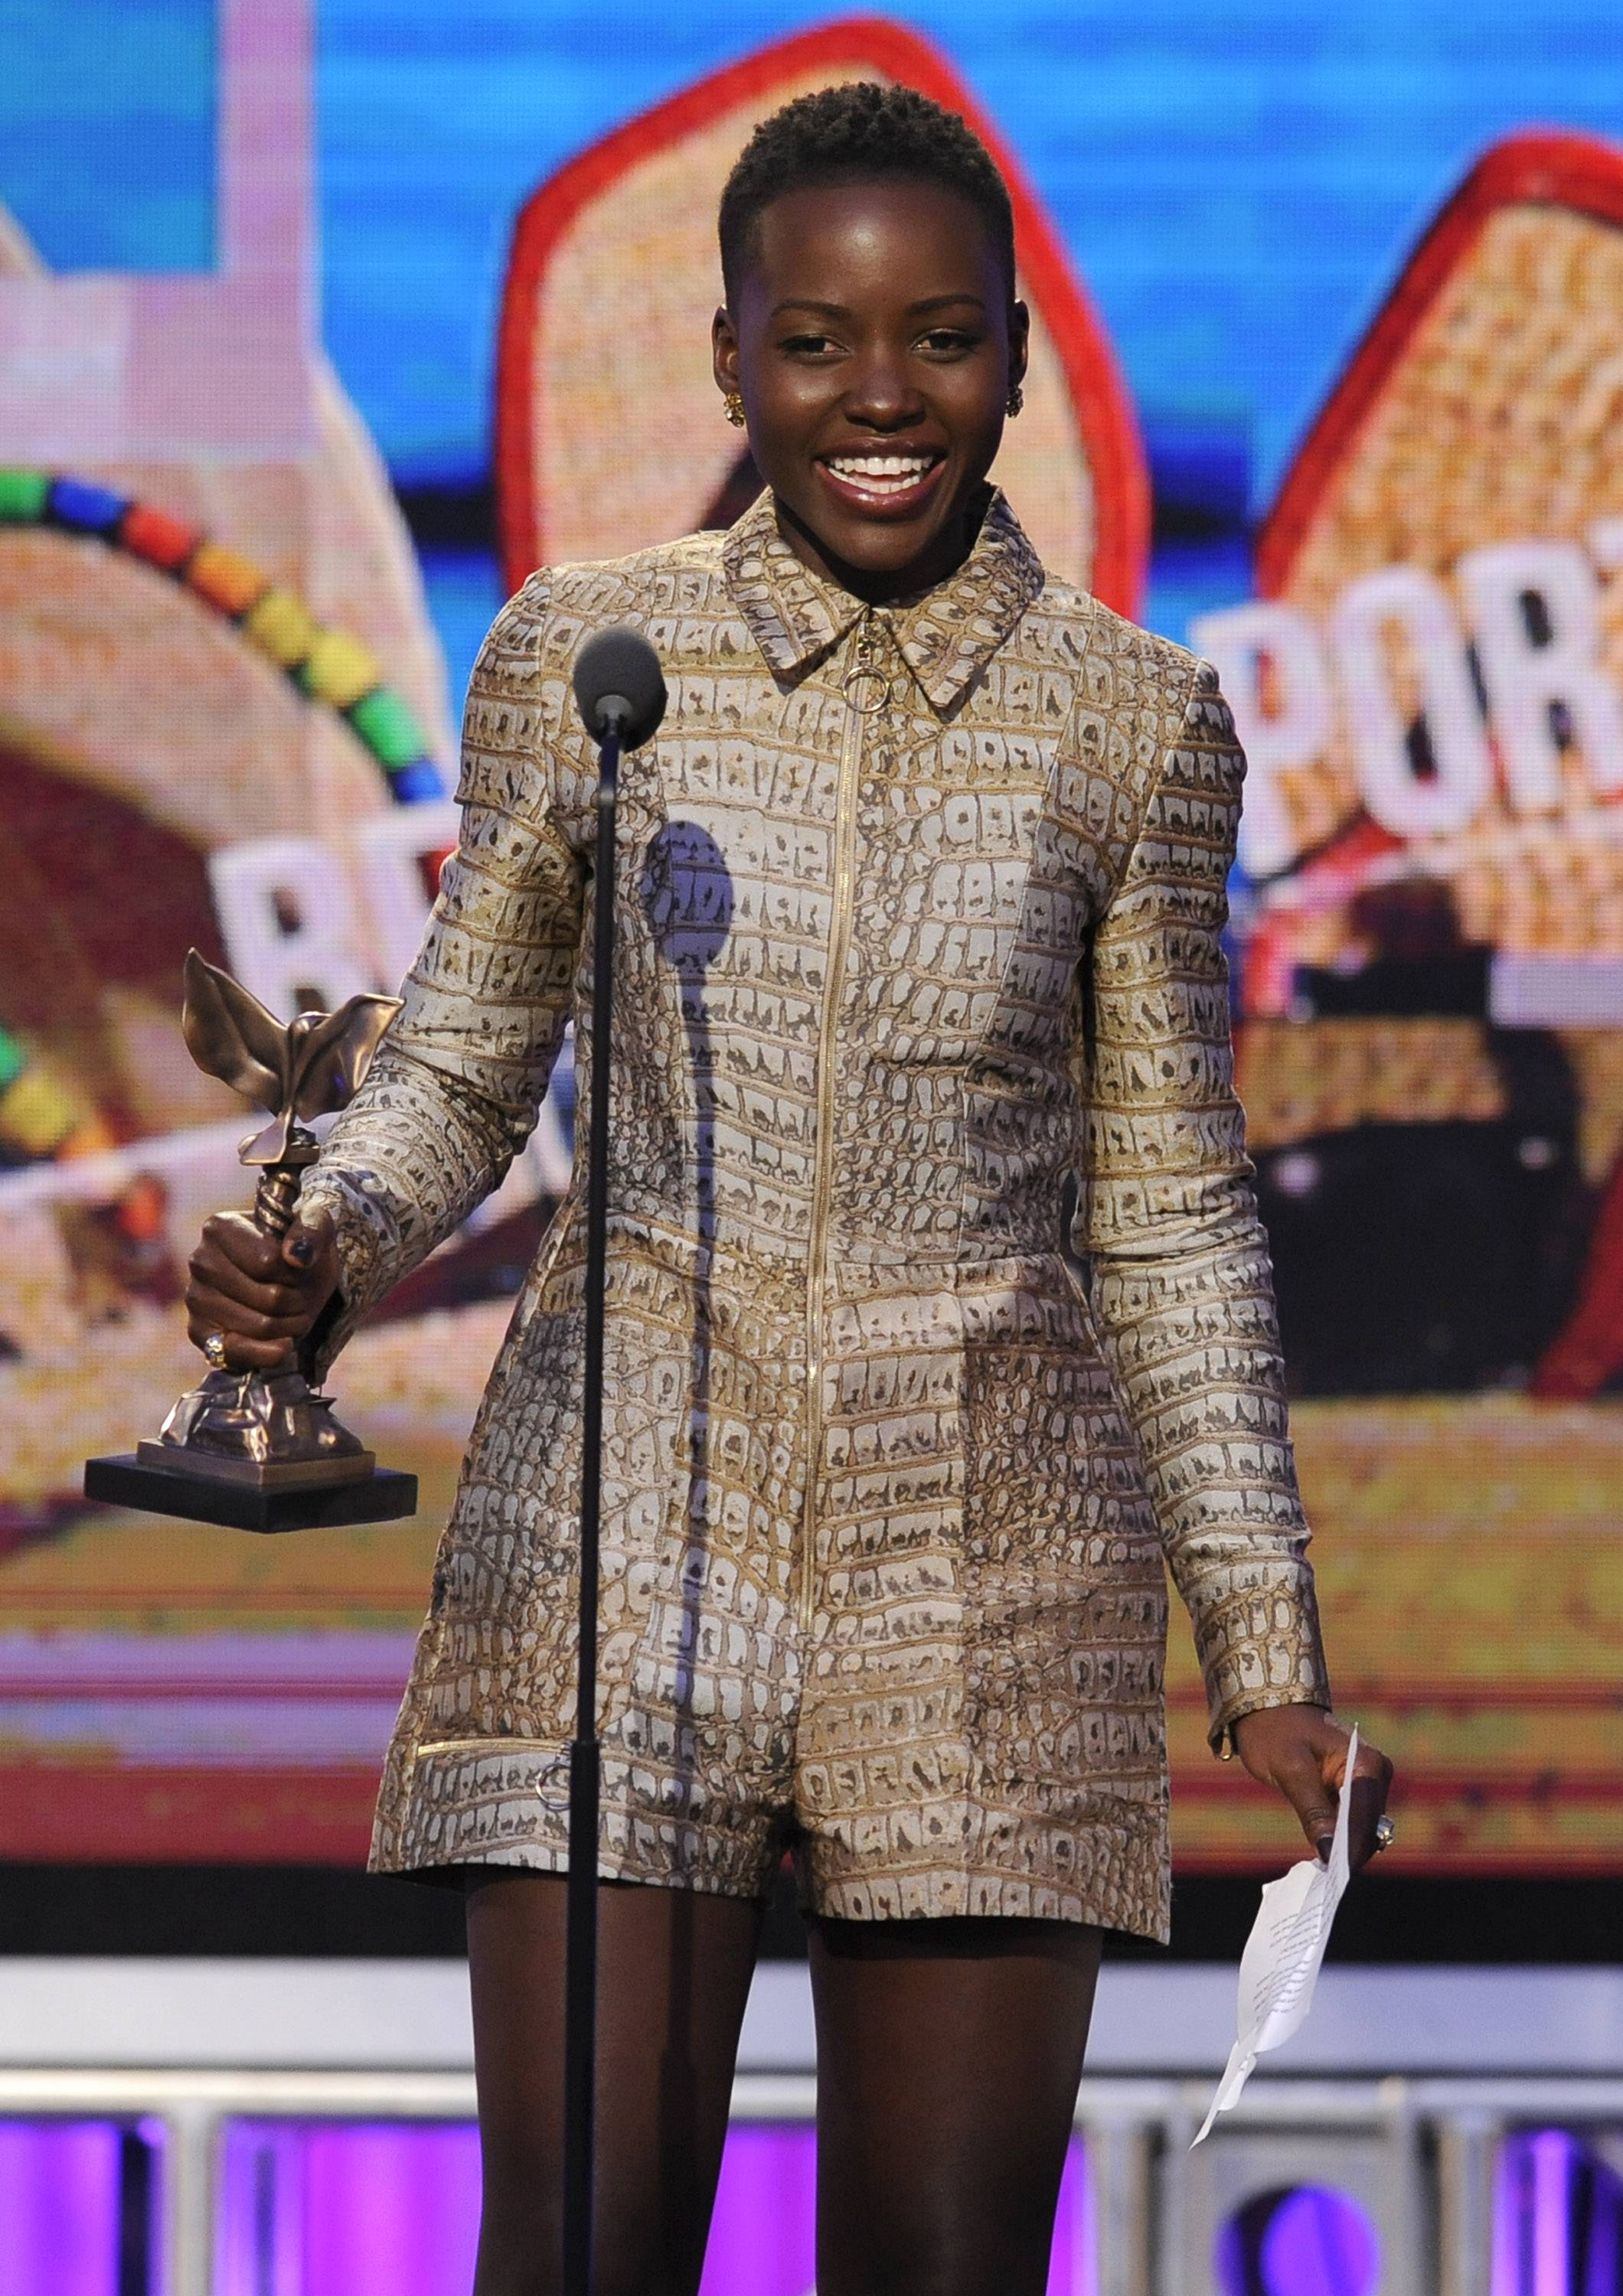 Lupita Nyong'o accepts the award for best supporting female on stage at the 2014 Film Independent Spirit Awards, on Saturday in Santa Monica, Calif.